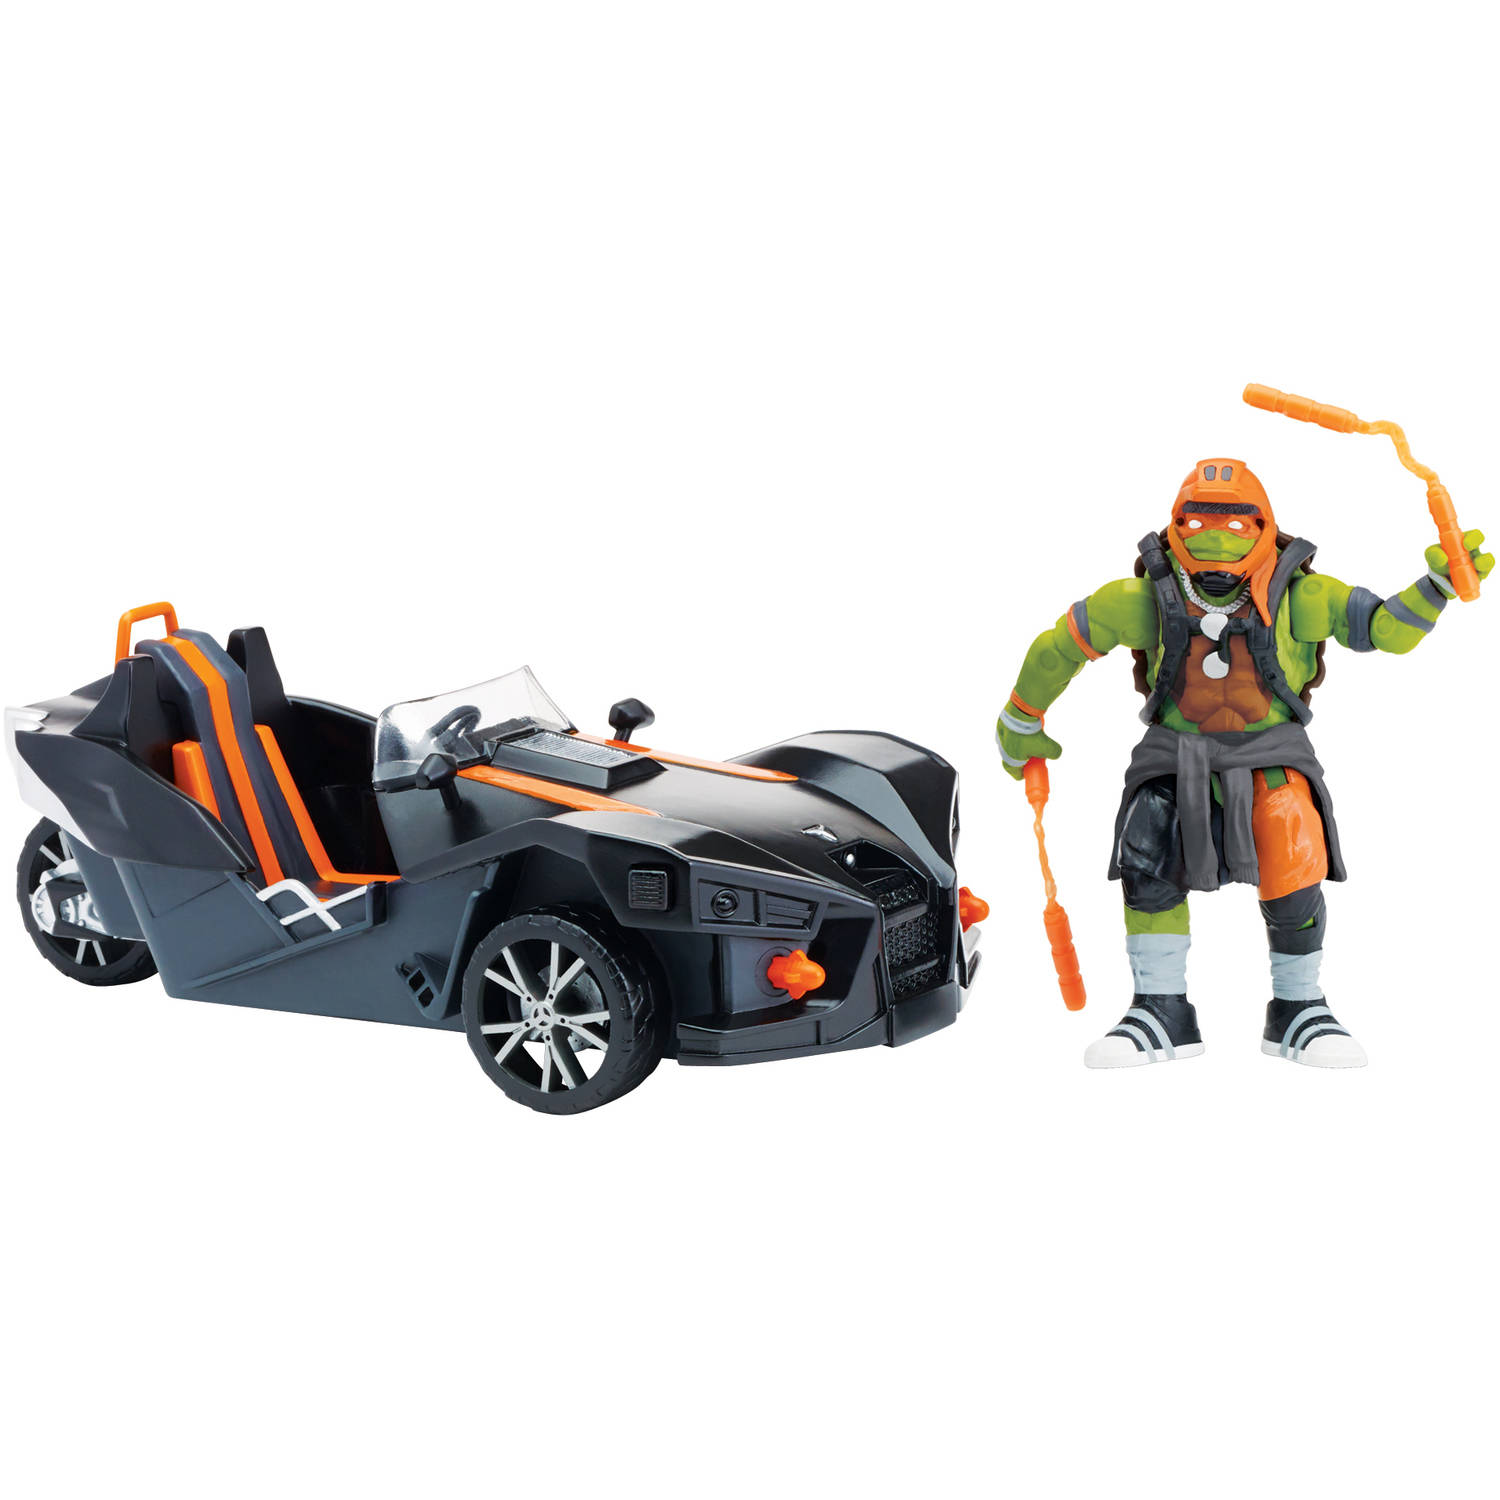 Teenage Mutant Ninja Turtles Out of the Shadows Michelangelo Figure with Polaris